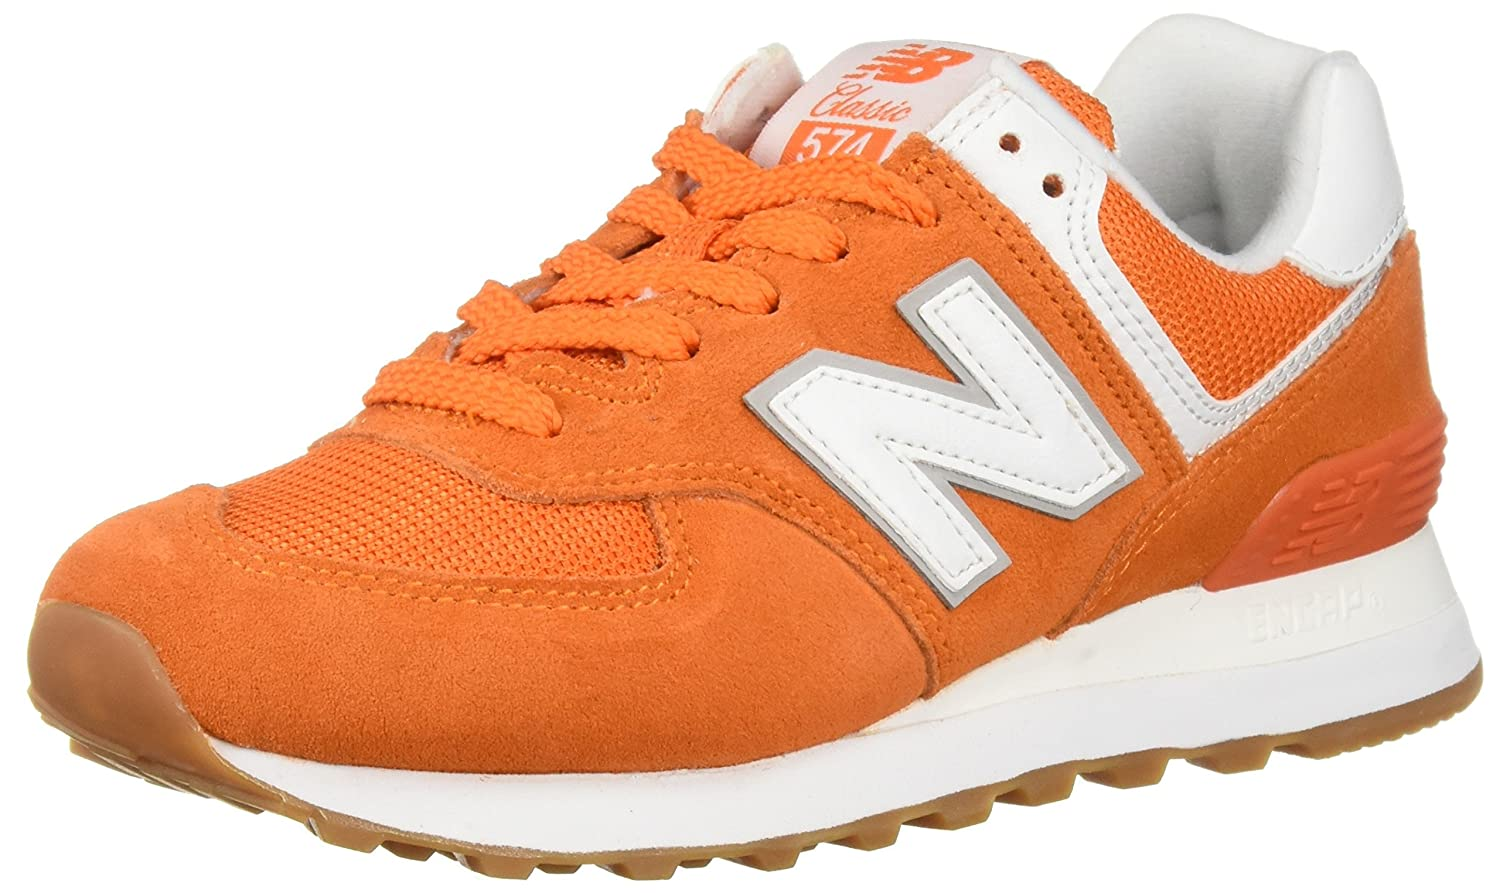 New Balance Women's 574v2 Sneaker B0751S2G2H 12 D US|Varsity Orange/Overcast